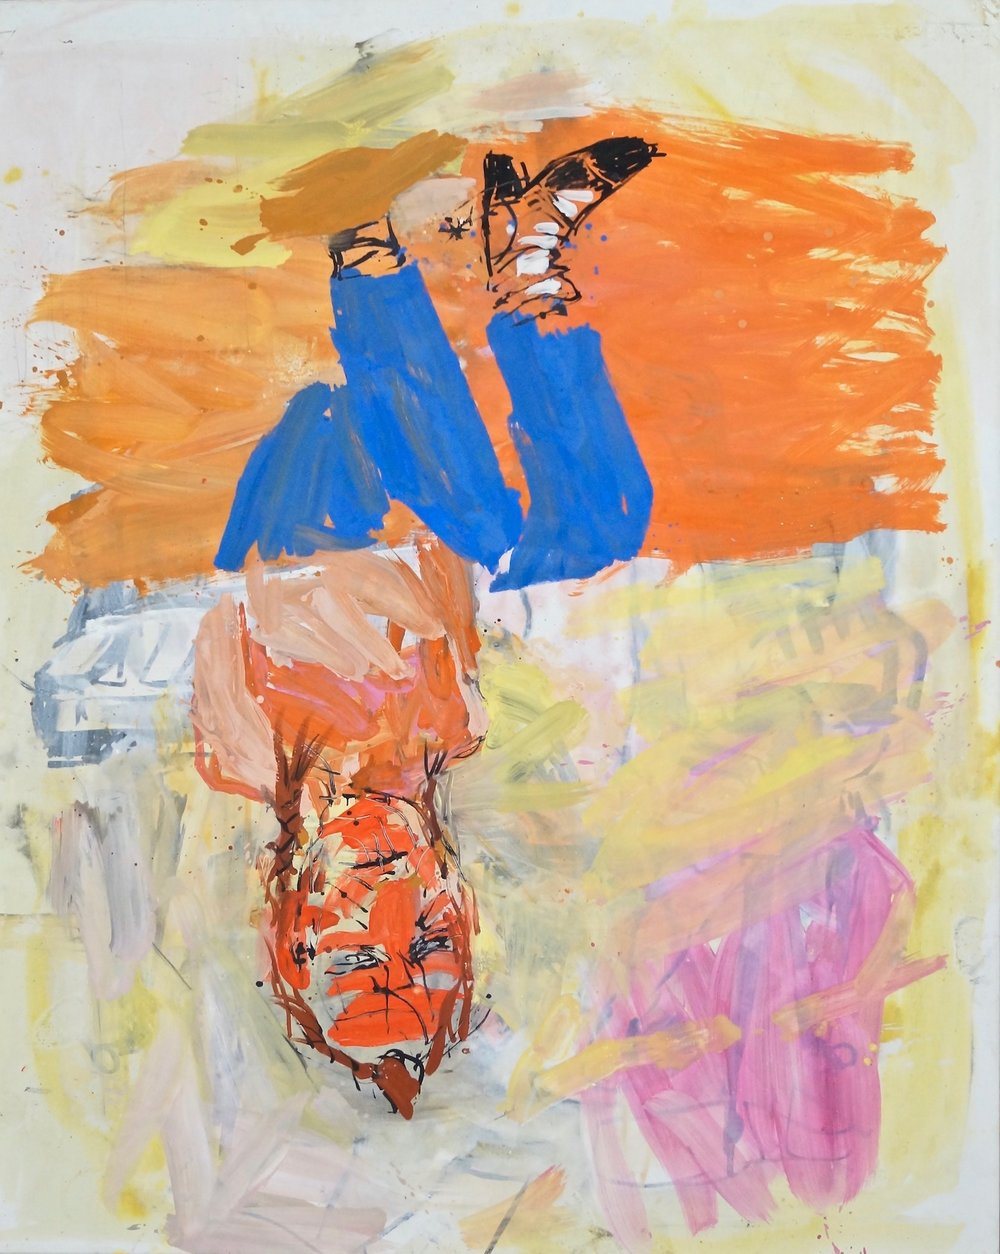 Georg Baselitz, Victory Day, 31.VII.03 oil on canvas 208 x 166 cm | 82 x 65 1/3 in